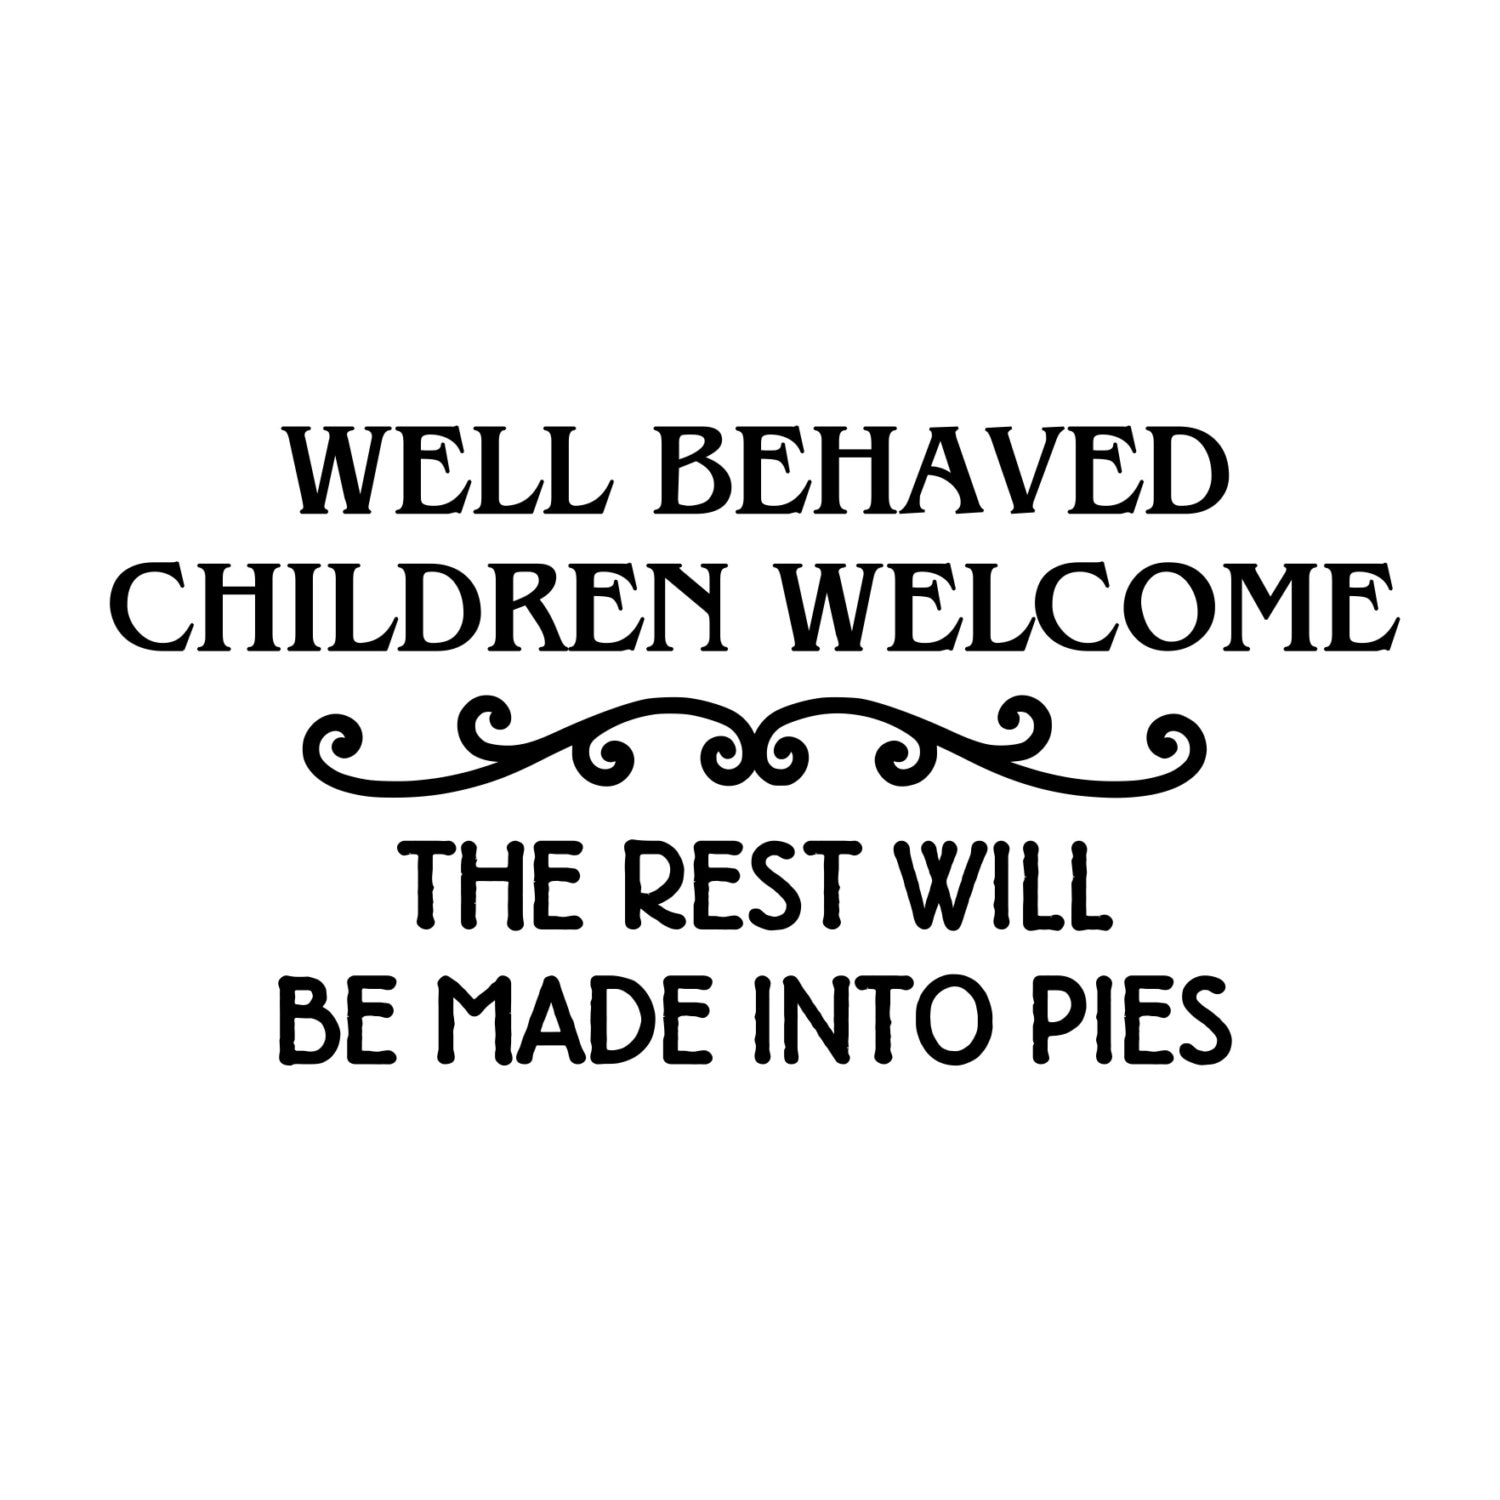 Well Behaved Children Welcome The Rest Will Be Made Into